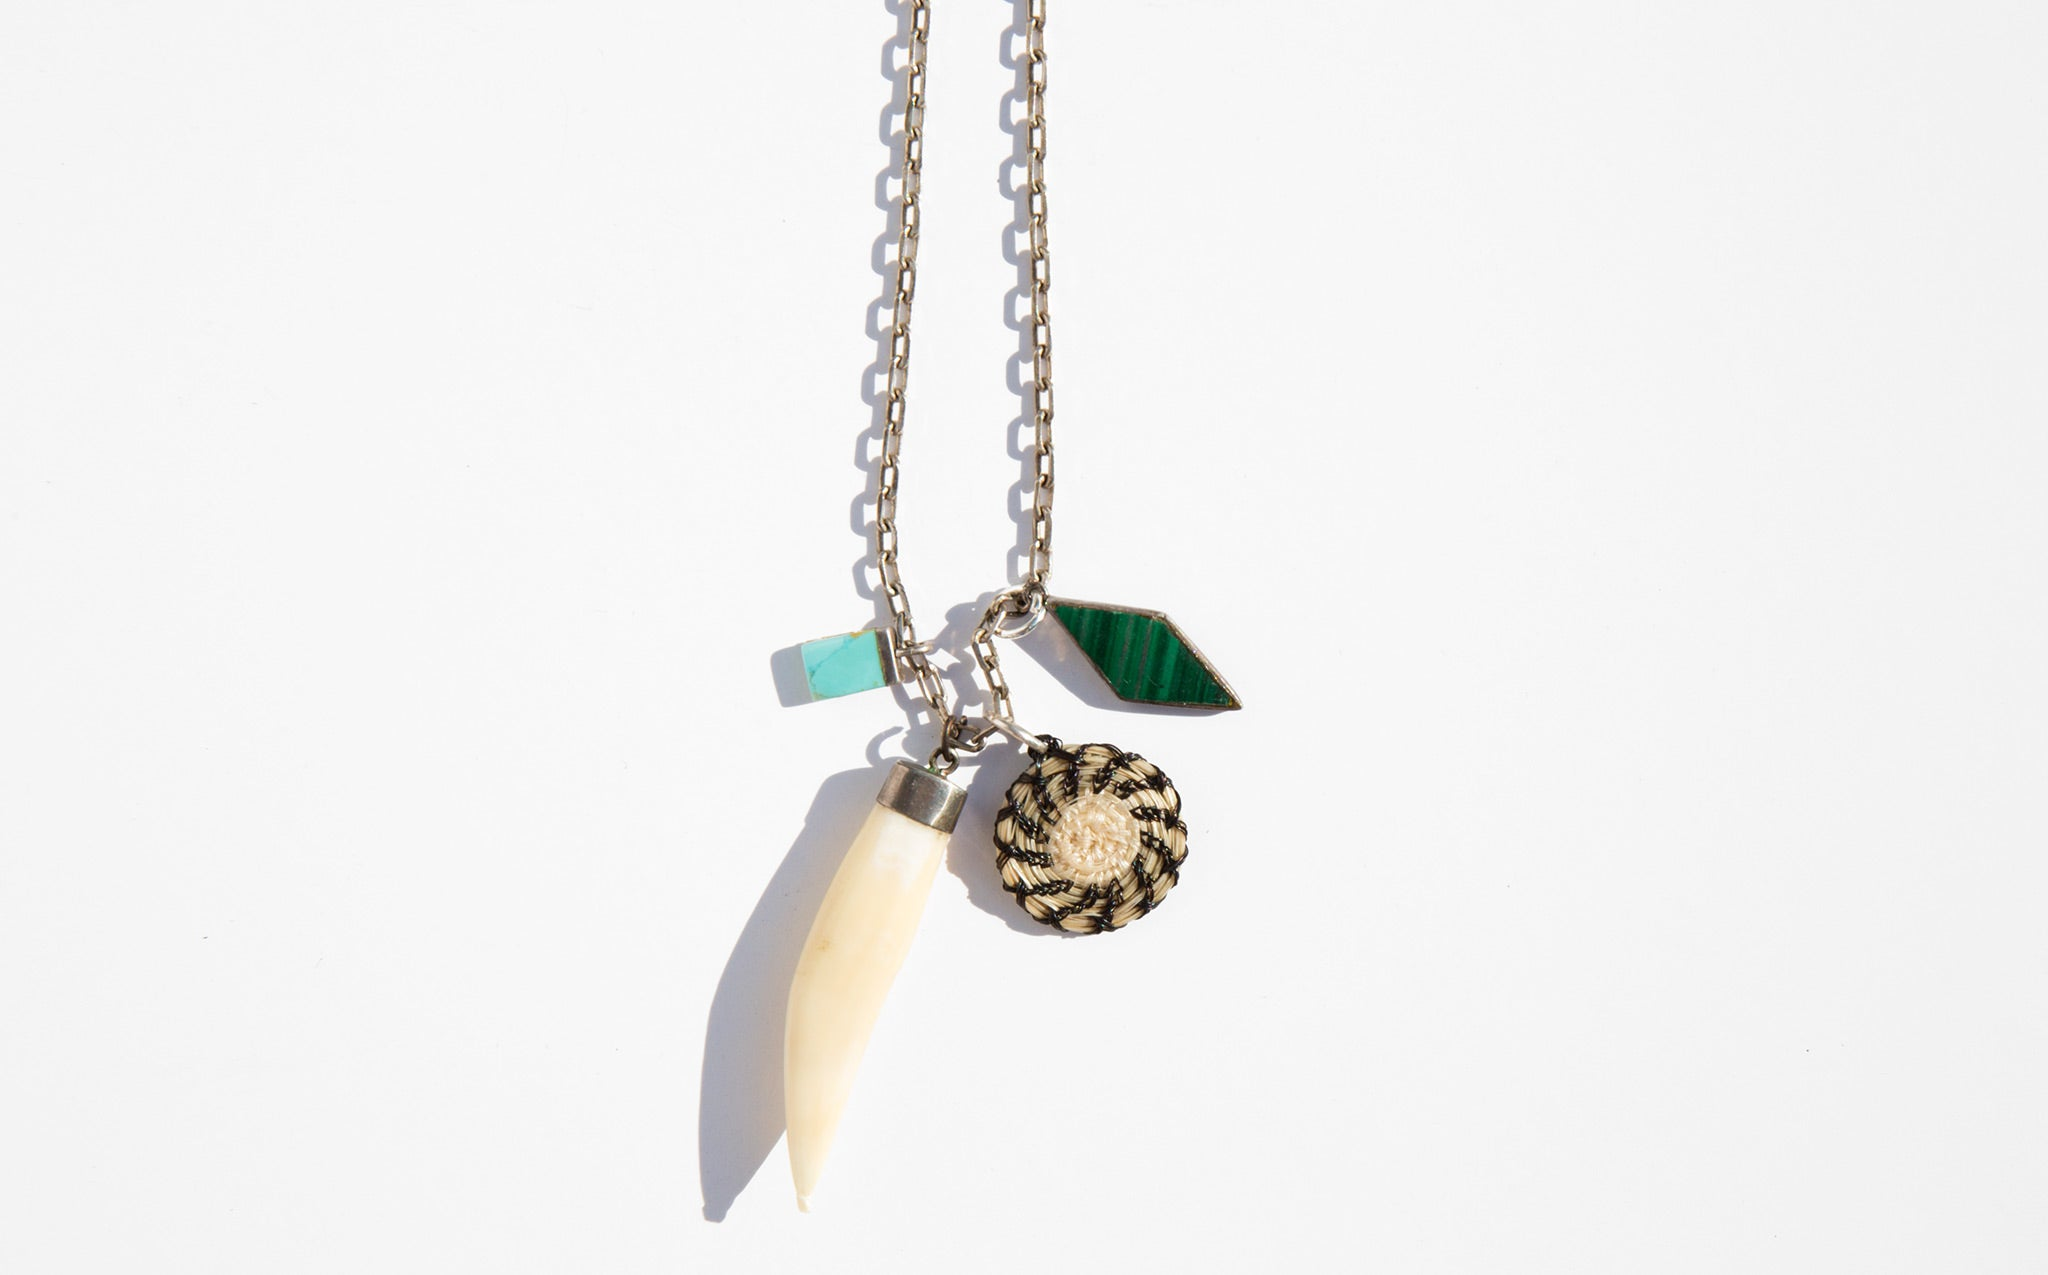 The Wandering Spirit Charm necklace